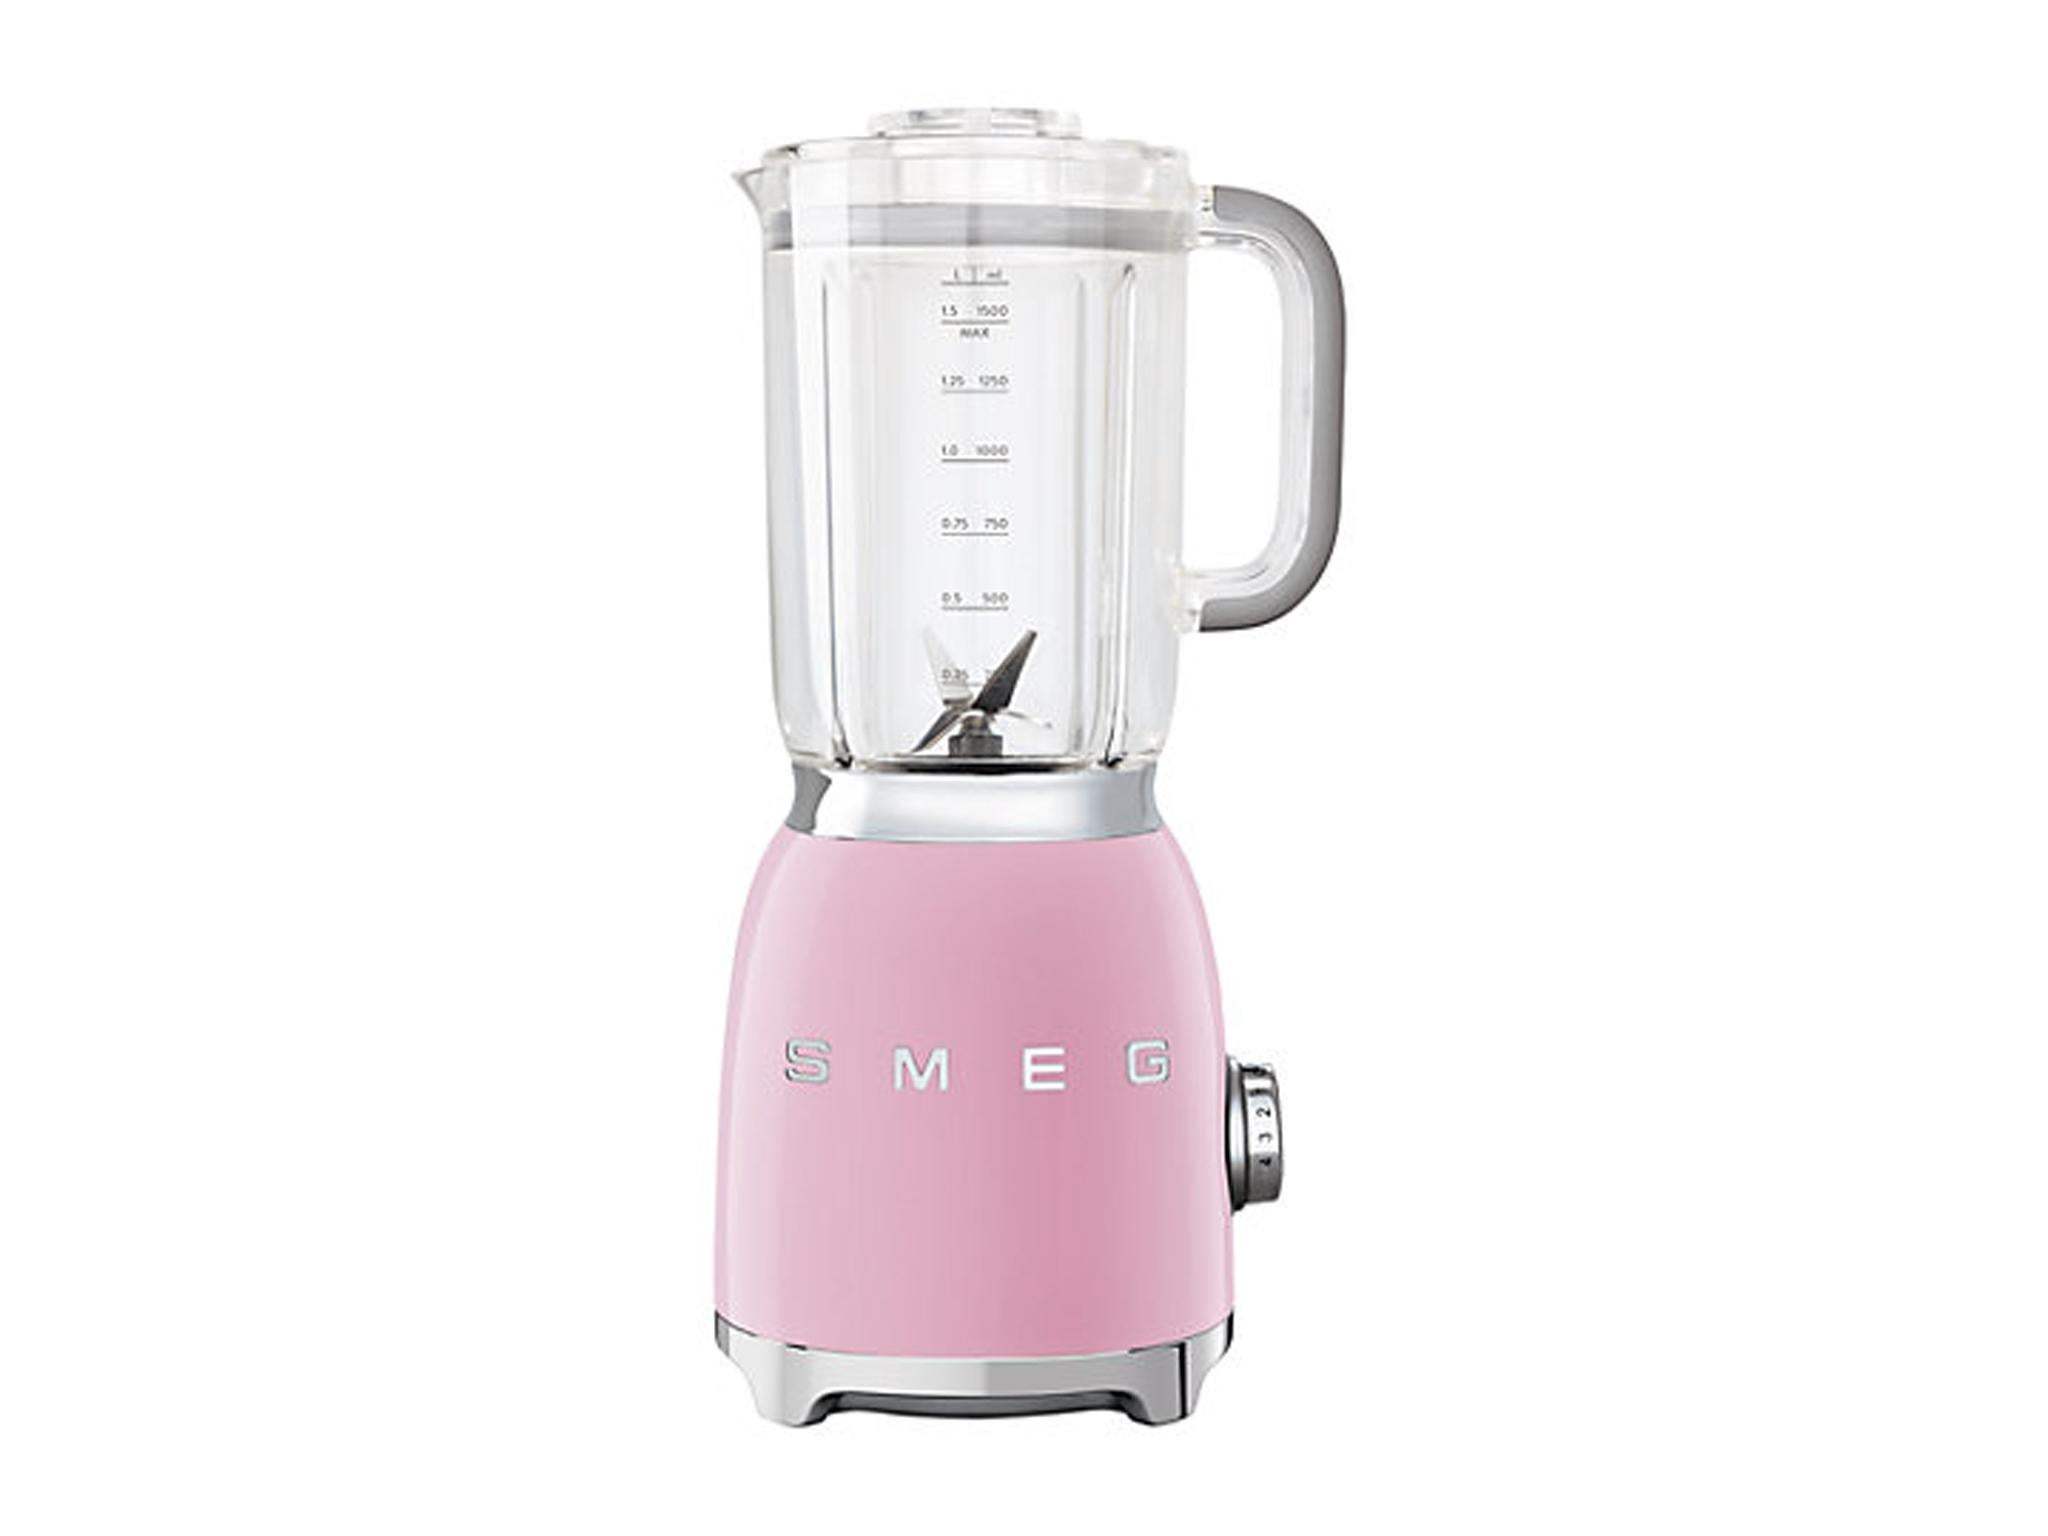 A chic addition to any kitchen, this Smeg blender stays true to the brands retro aesthetic and comes in seven vintage pastel shades.